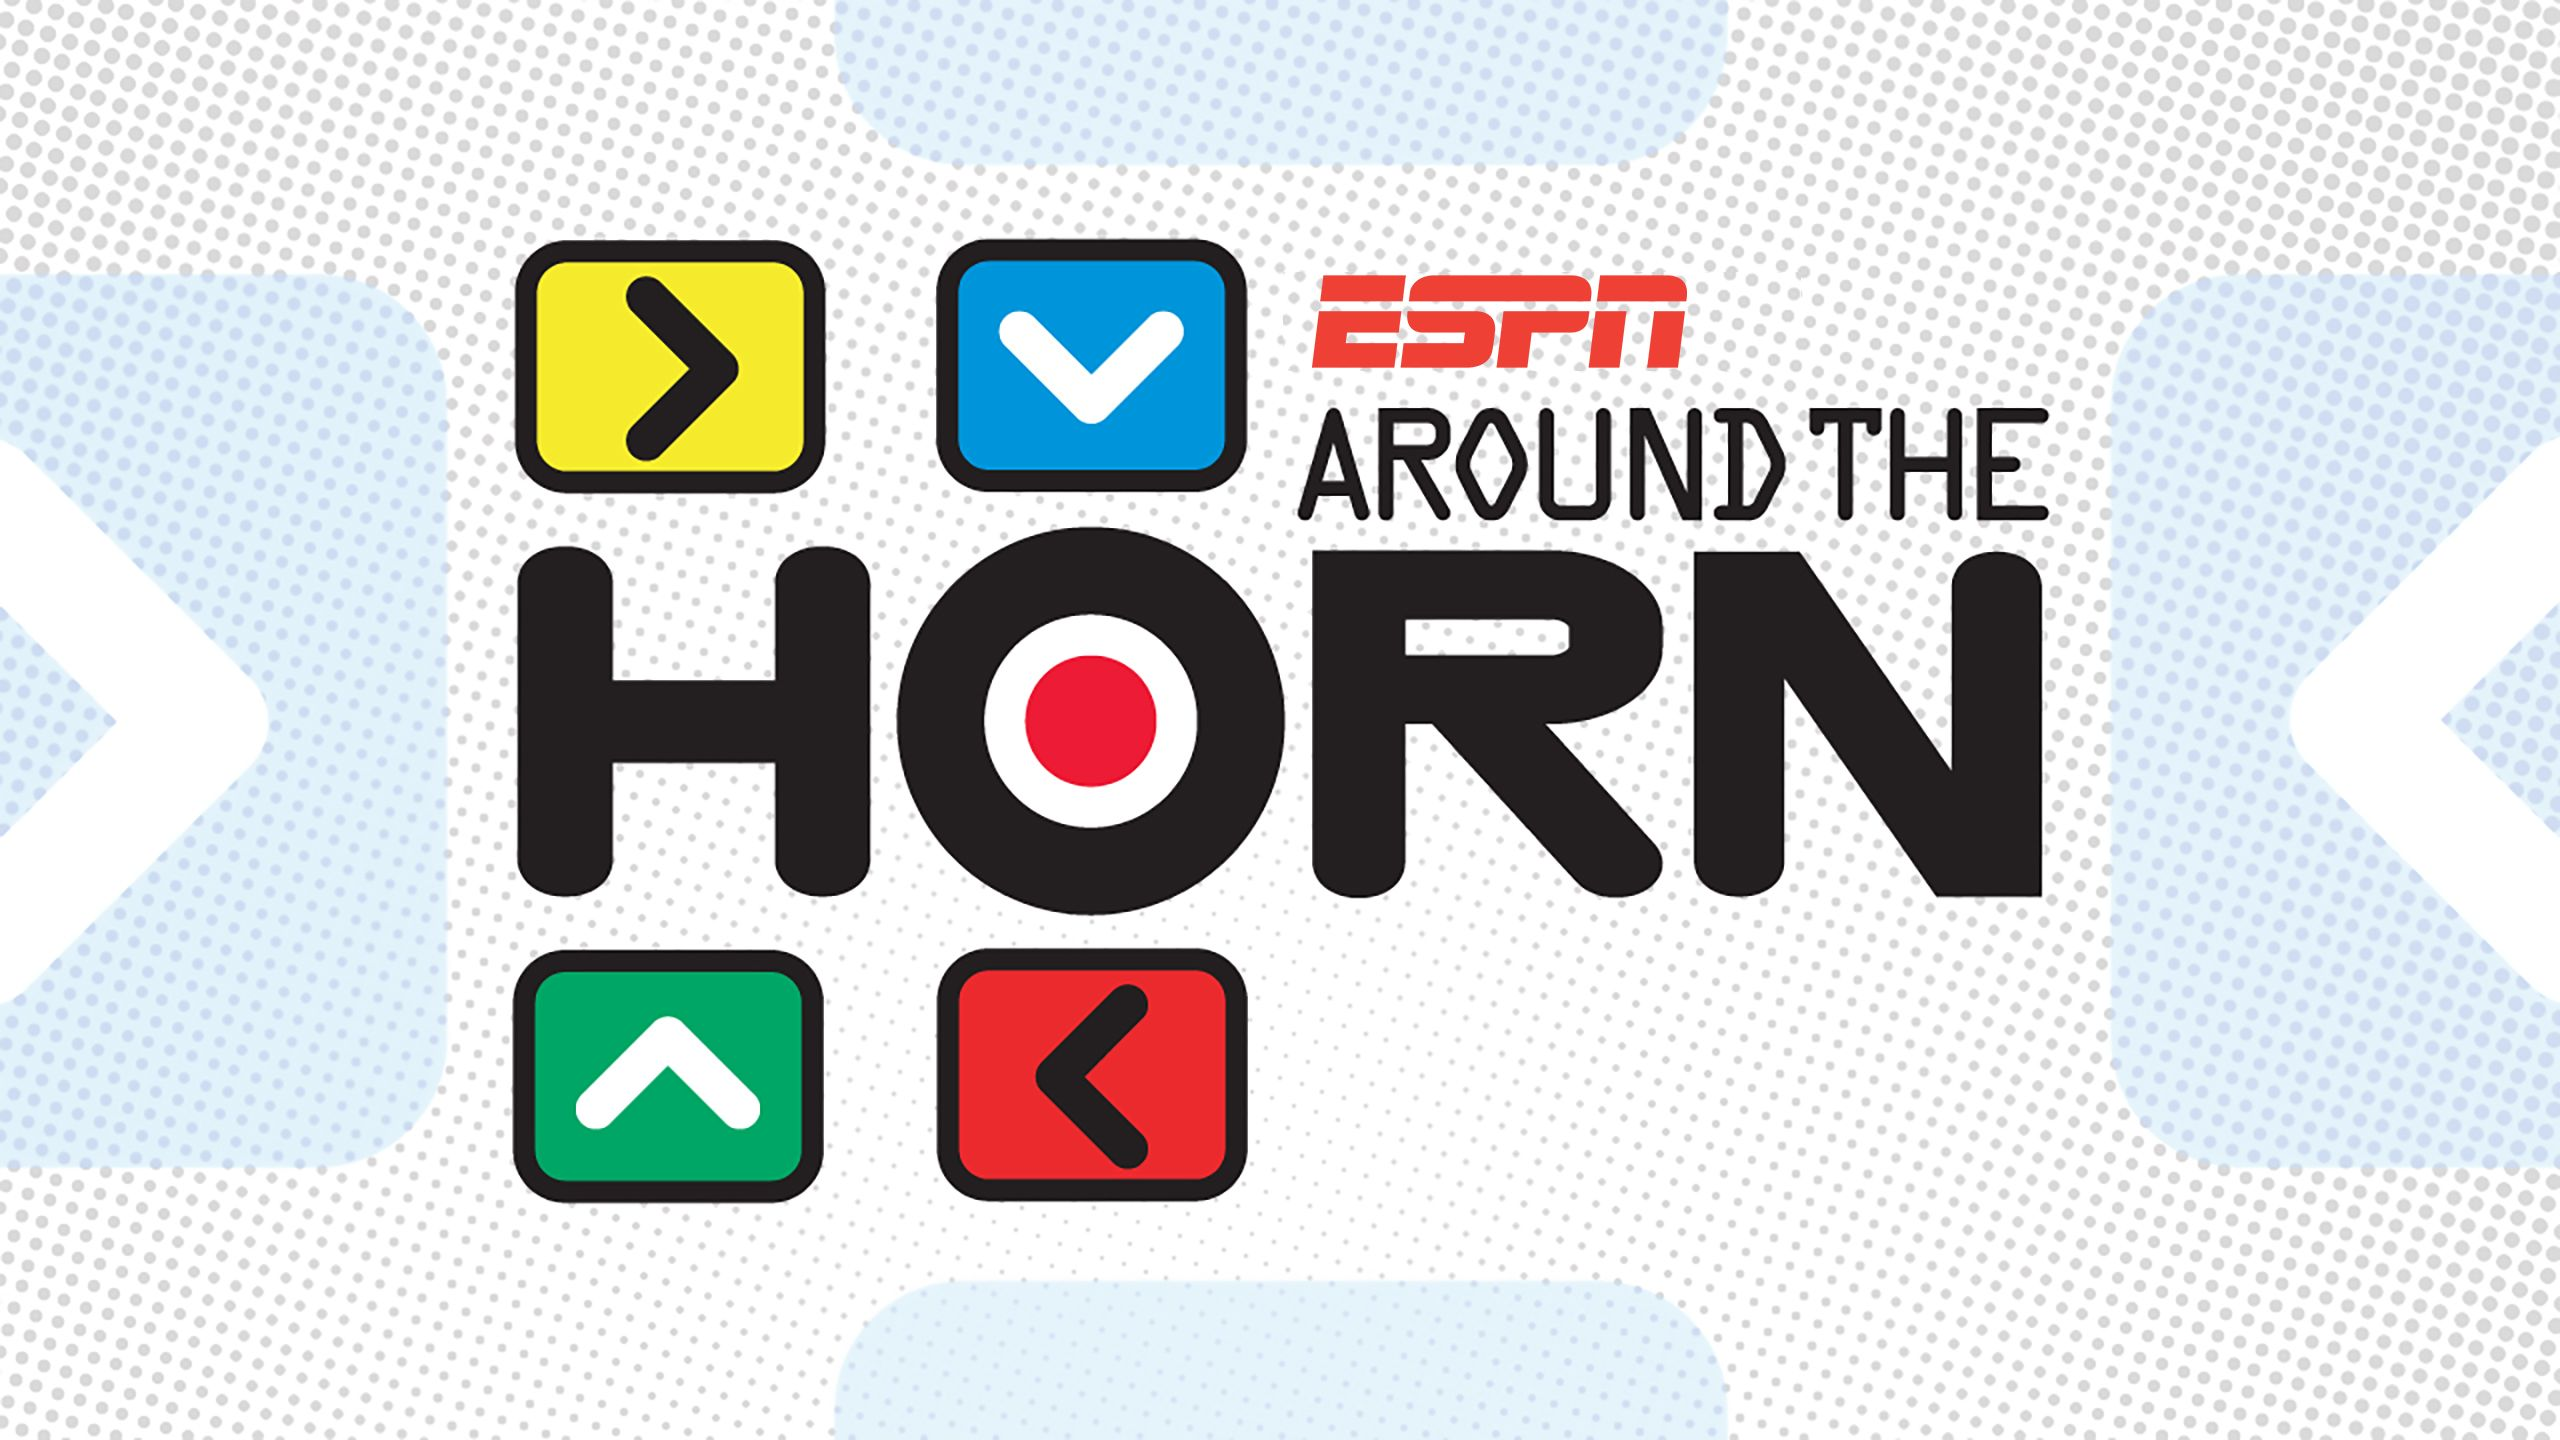 Tue, 2/20 - Around The Horn